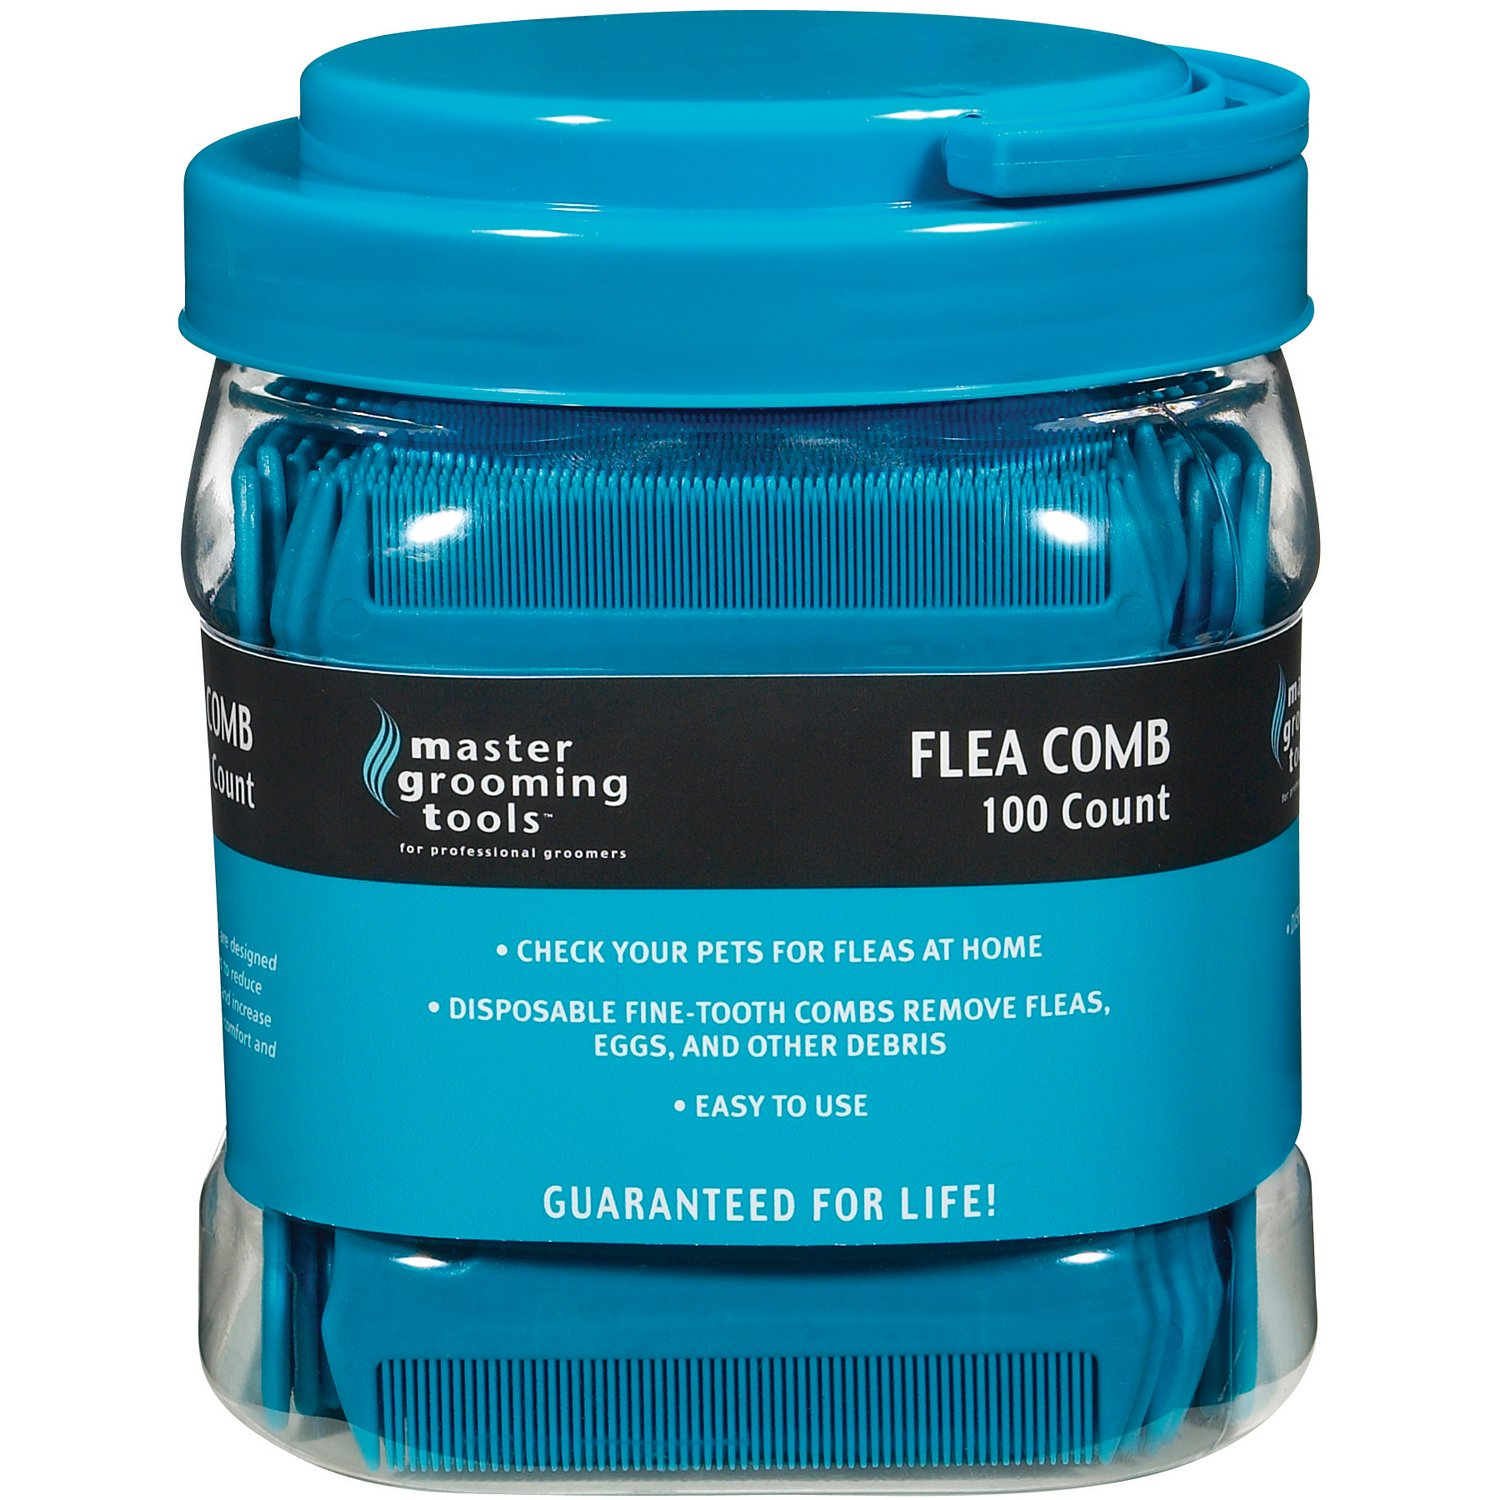 Master Grooming Tools Flea Comb Canisters - Effective Flea Combs for Grooming Dogs, 100-Count Canister